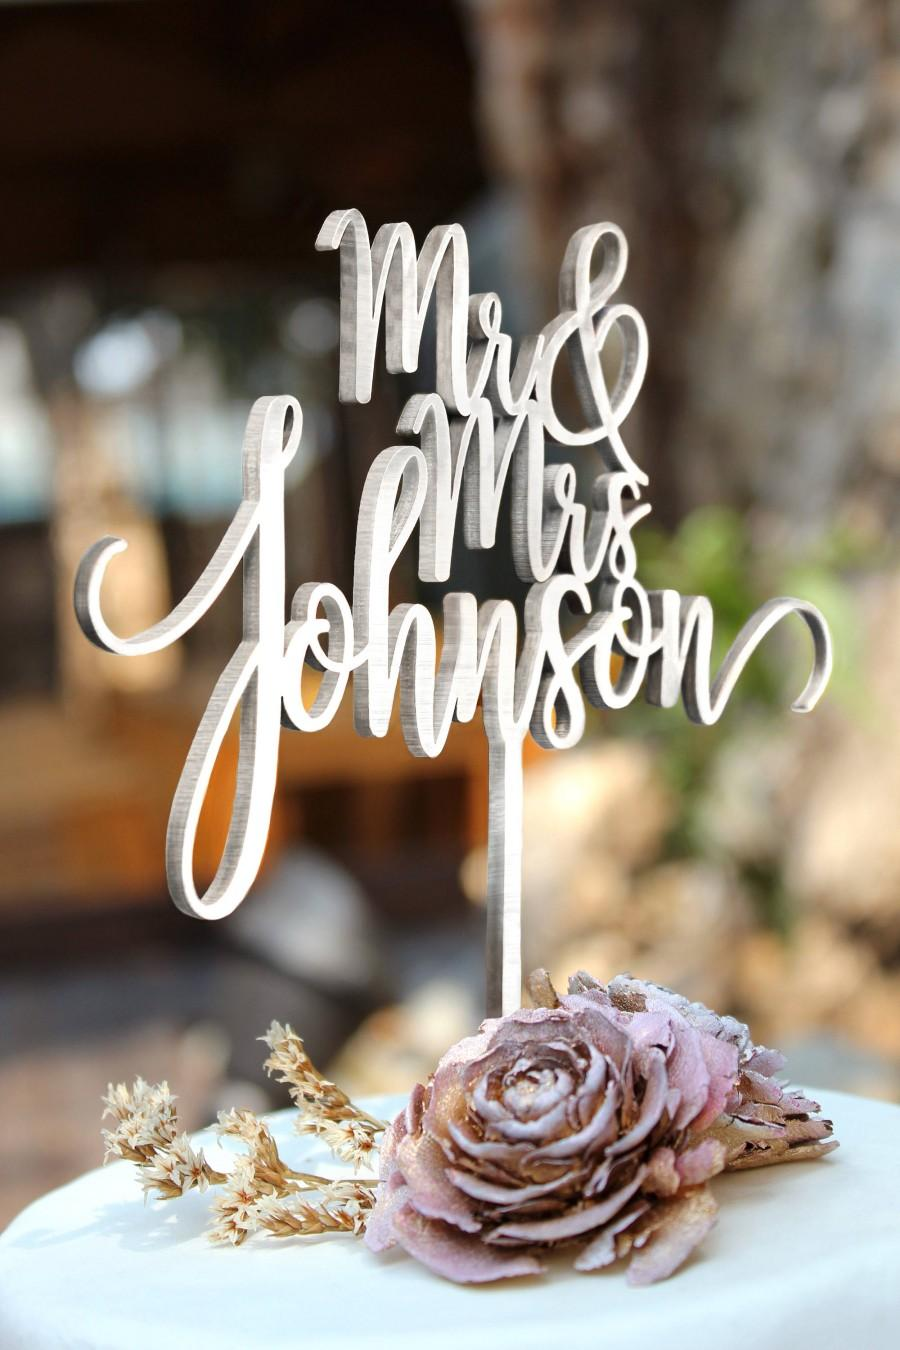 Mariage - Personalized Cake Topper for Wedding, Custom Personalized Wedding Cake Topper, Customized Wedding Cake Topper, Mr and Mrs Cake Topper 29